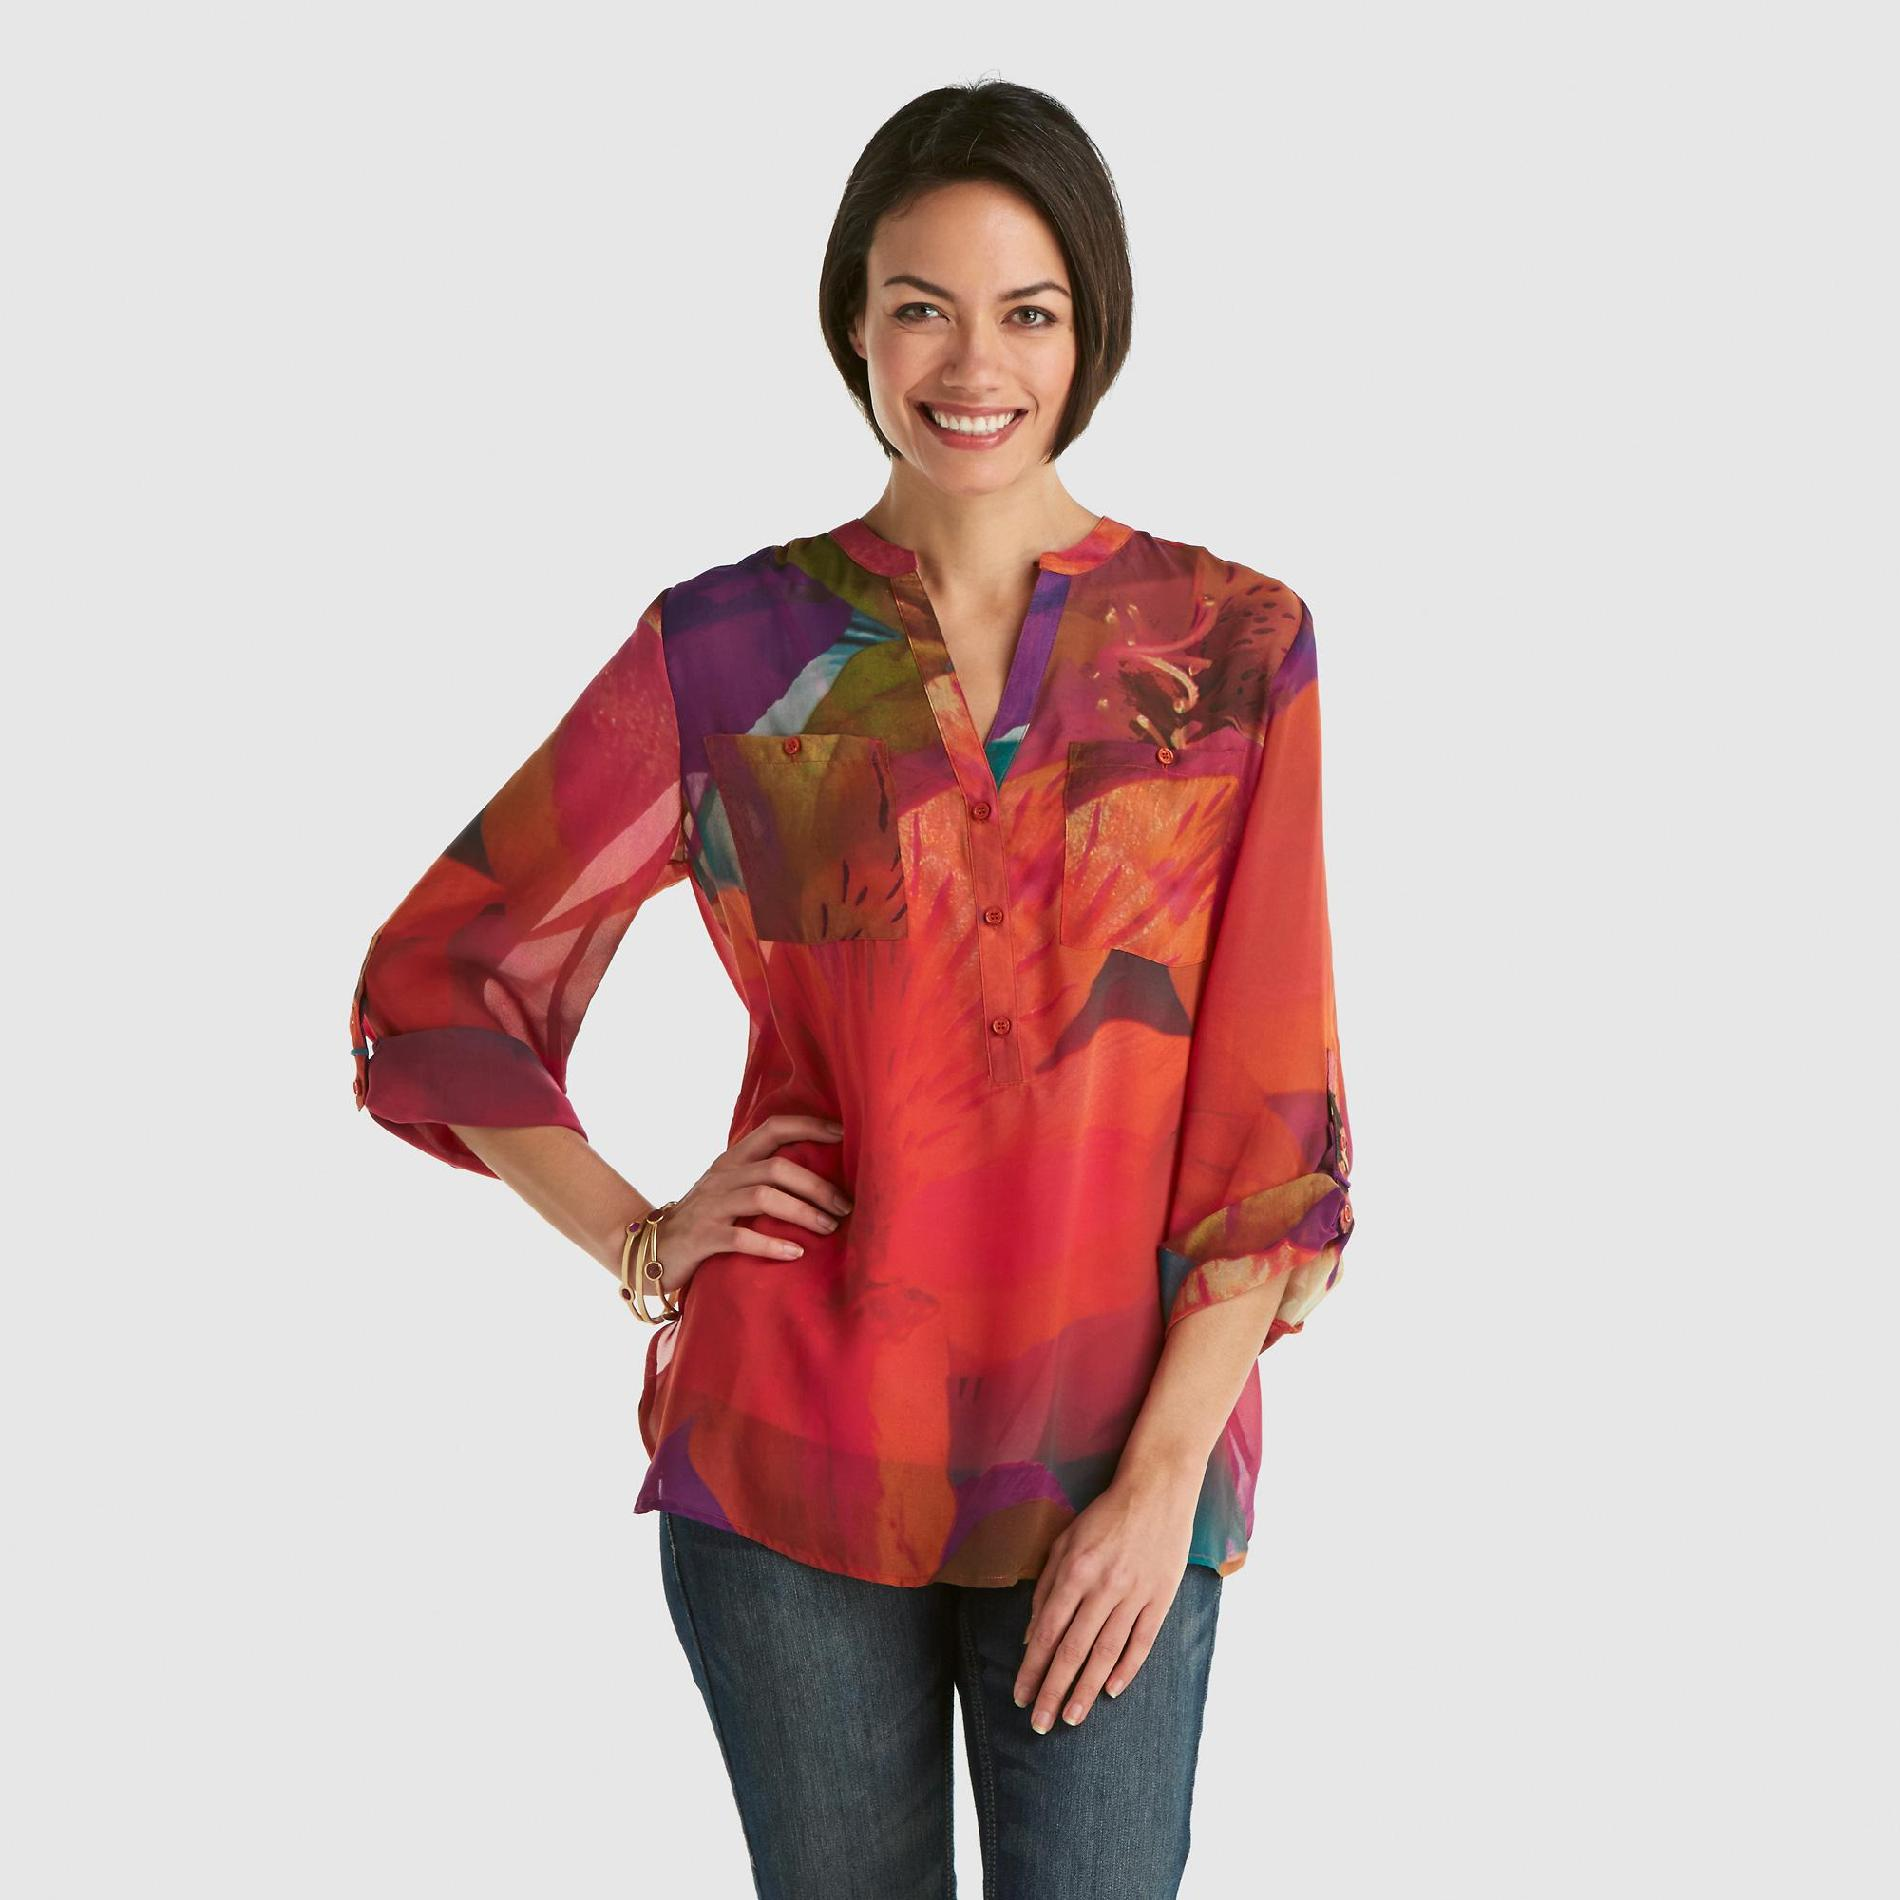 Covington Women's Blouse - Floral at Sears.com